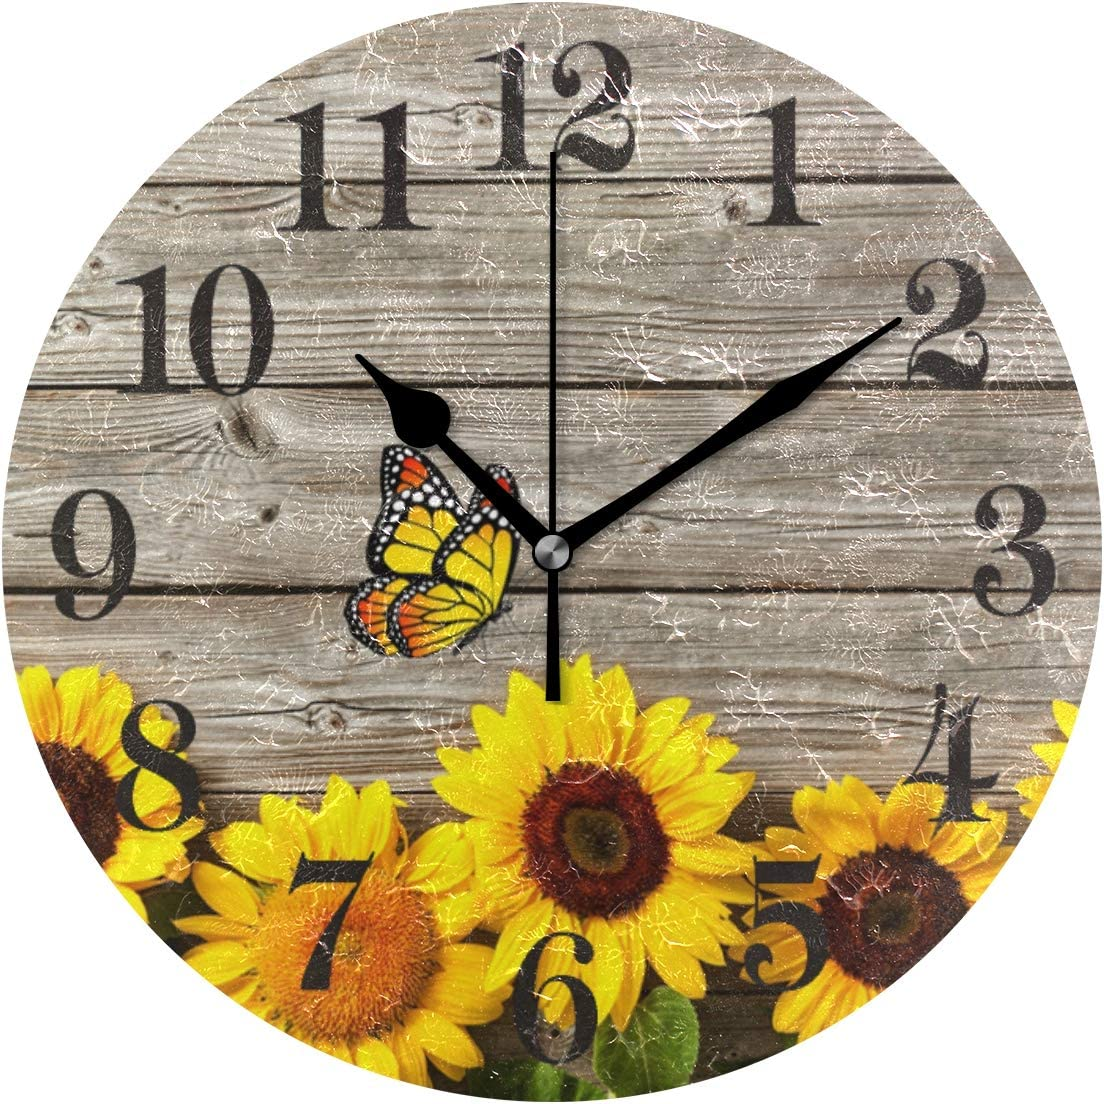 WIHVE Sunflowers Wooden Vintage Round Wall Clock, 10 Inch Battery Operated Desk Hanging Clock for Home Office School